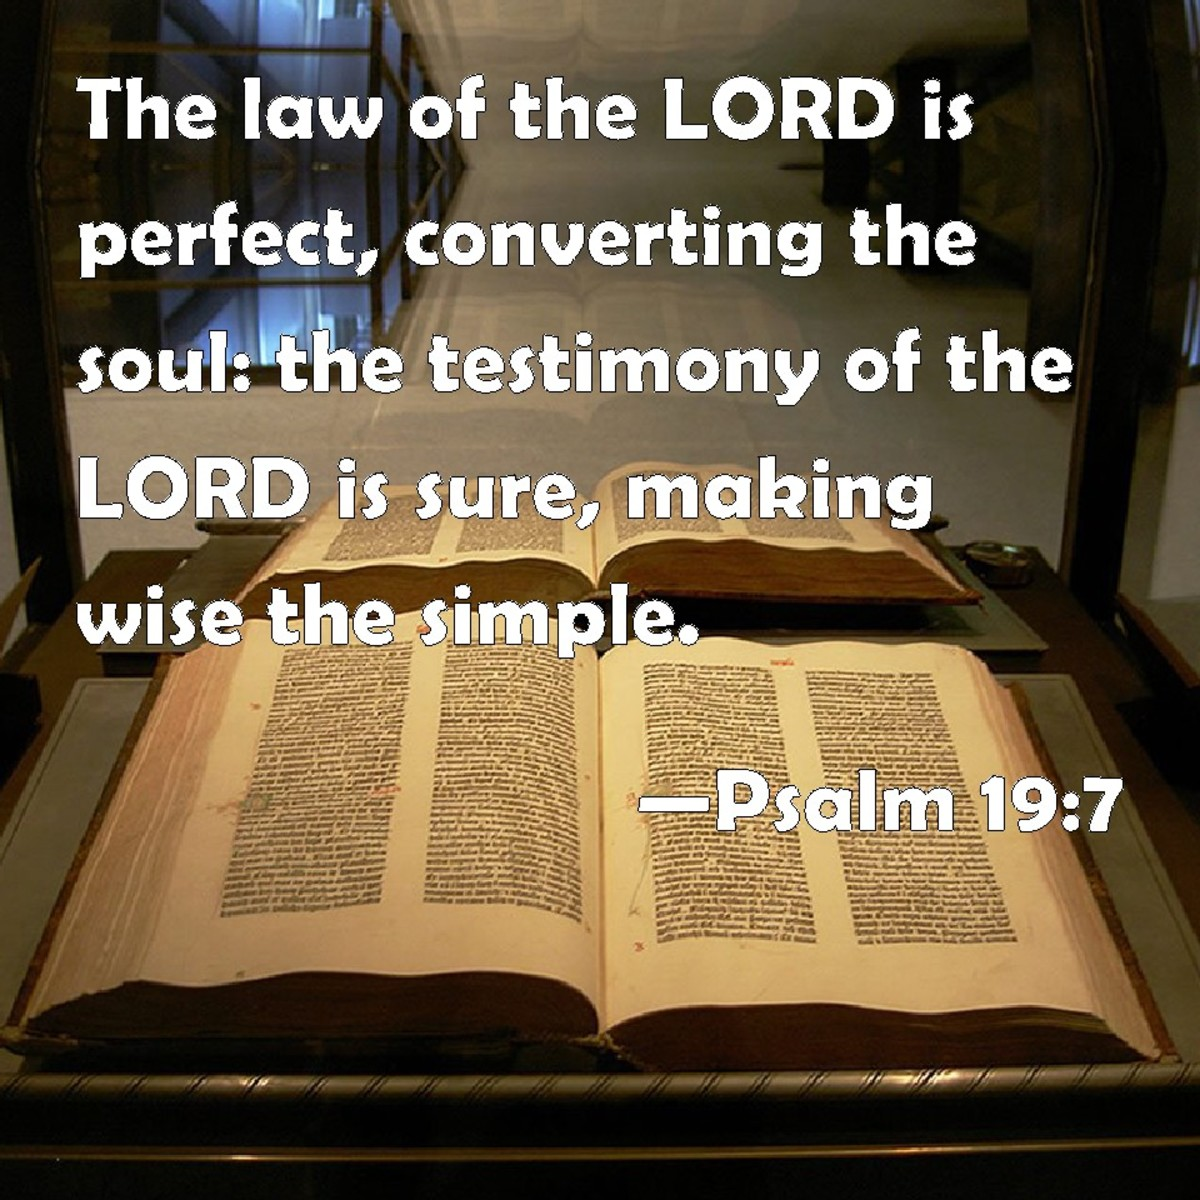 There is no Gospel without the Law, only the traditions of man.